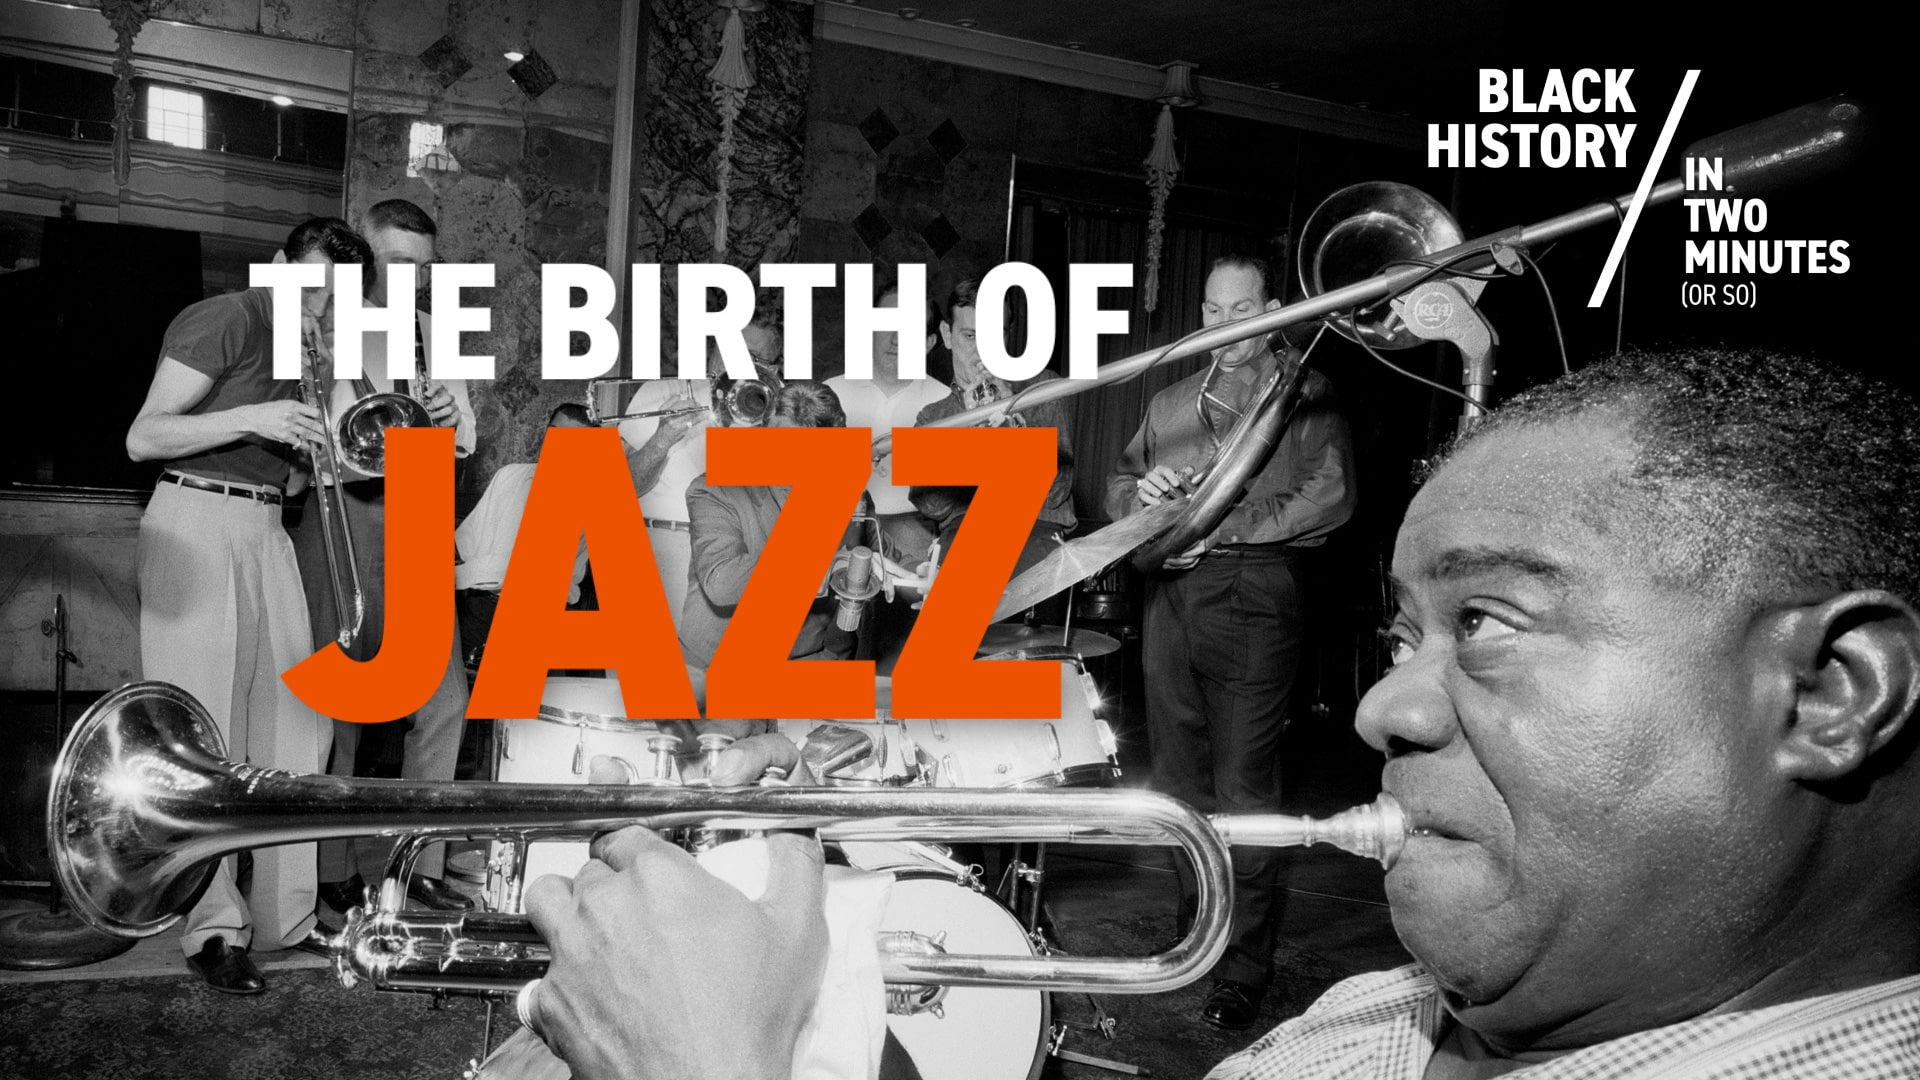 The Birth of Jazz